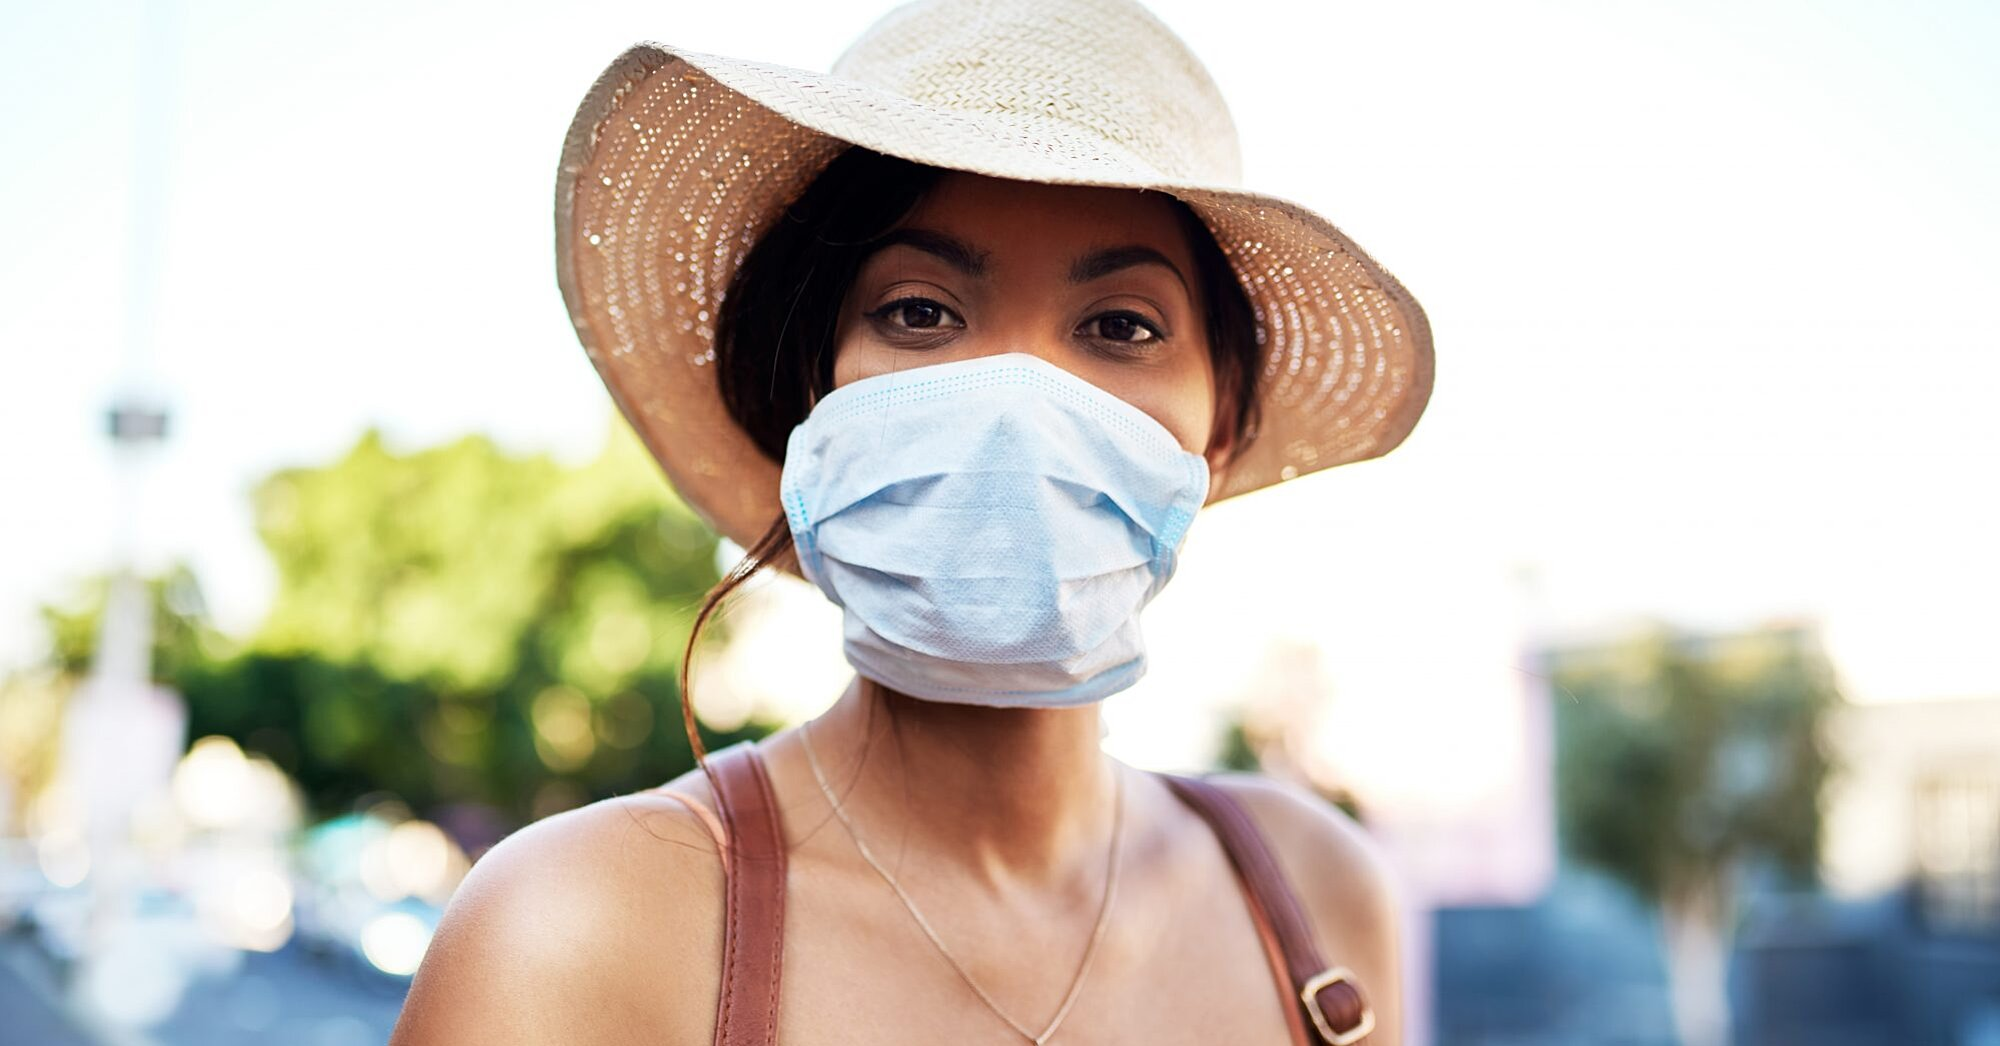 Leaving the House? Here Are 6 Safe Practices to Follow When Returning Home During the Coronavirus Outbreak